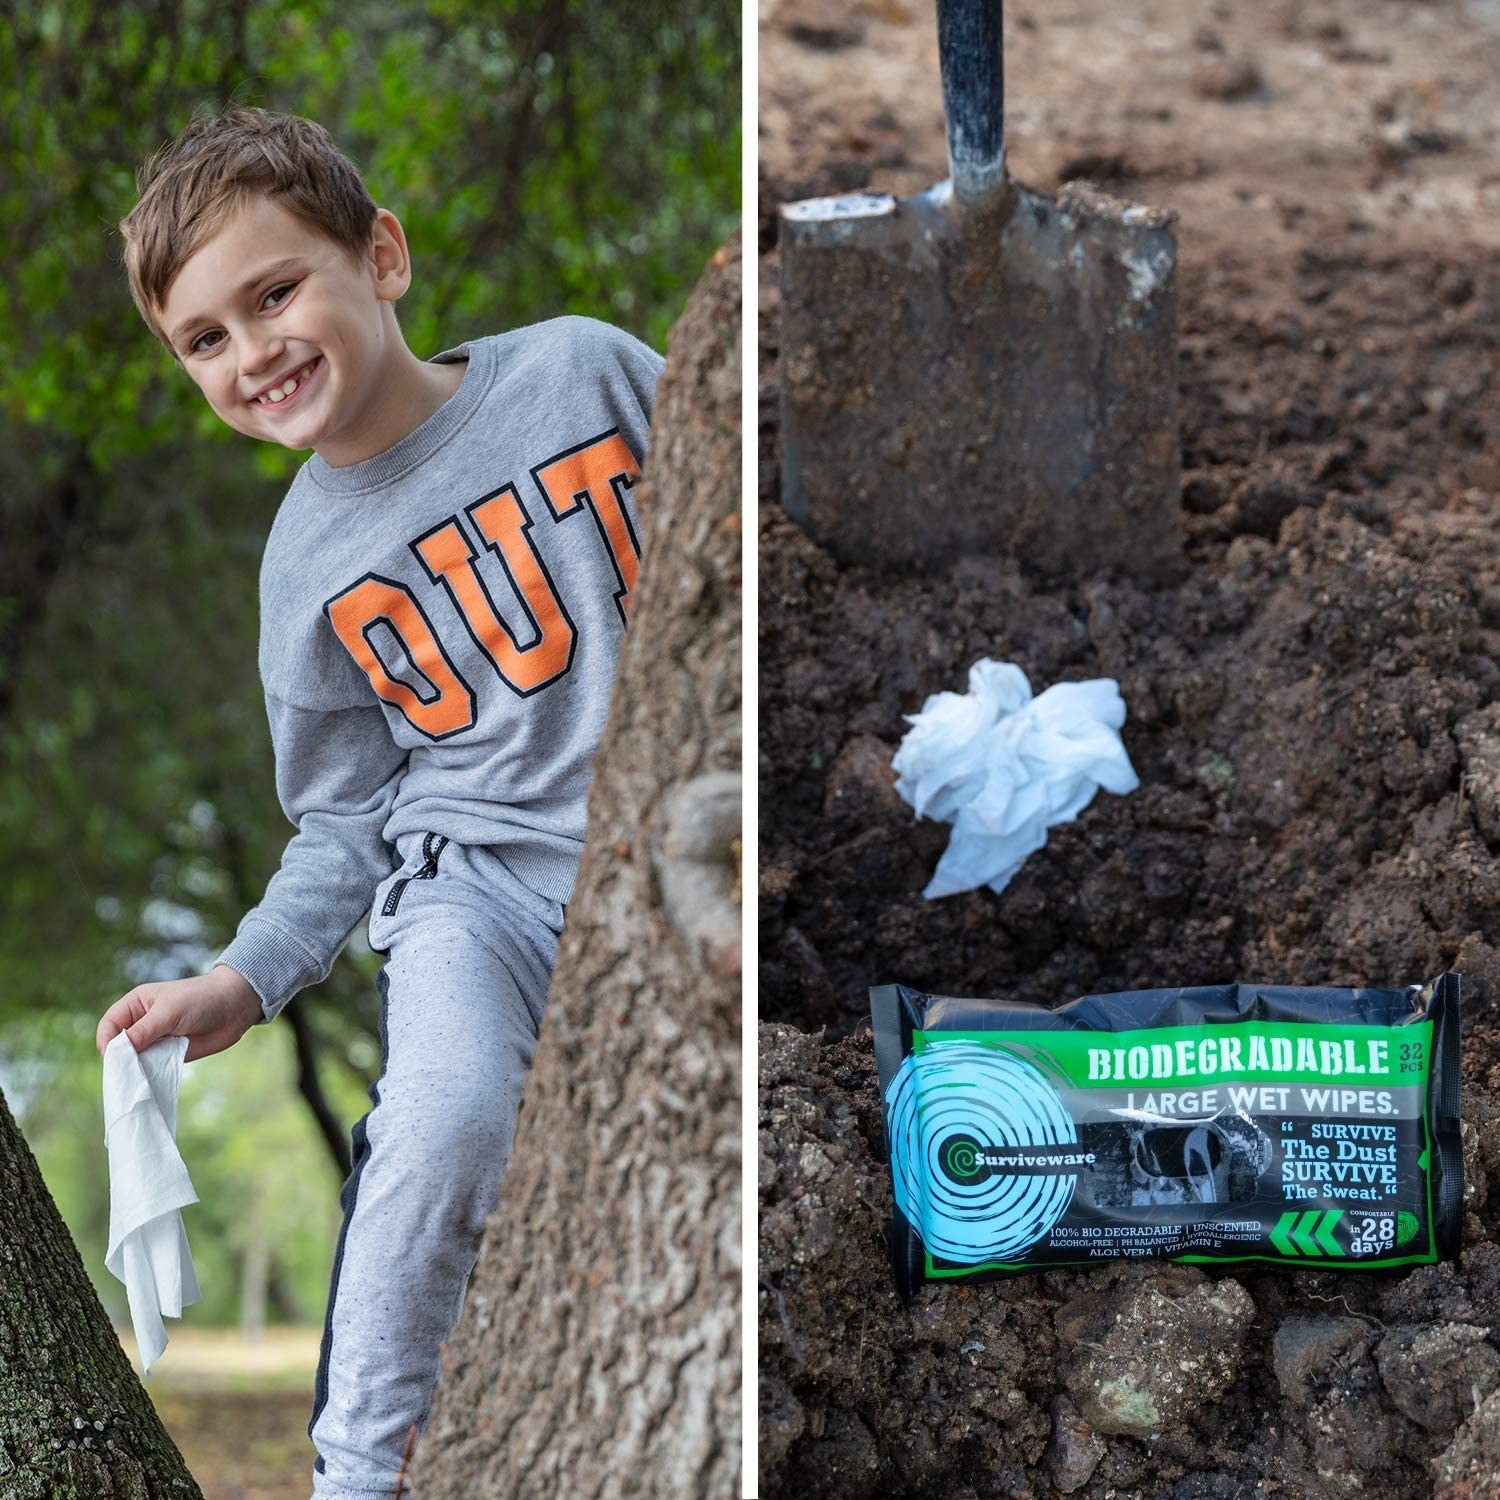 A child holding a wet wipe in a tree and a package of wet wipes on the ground